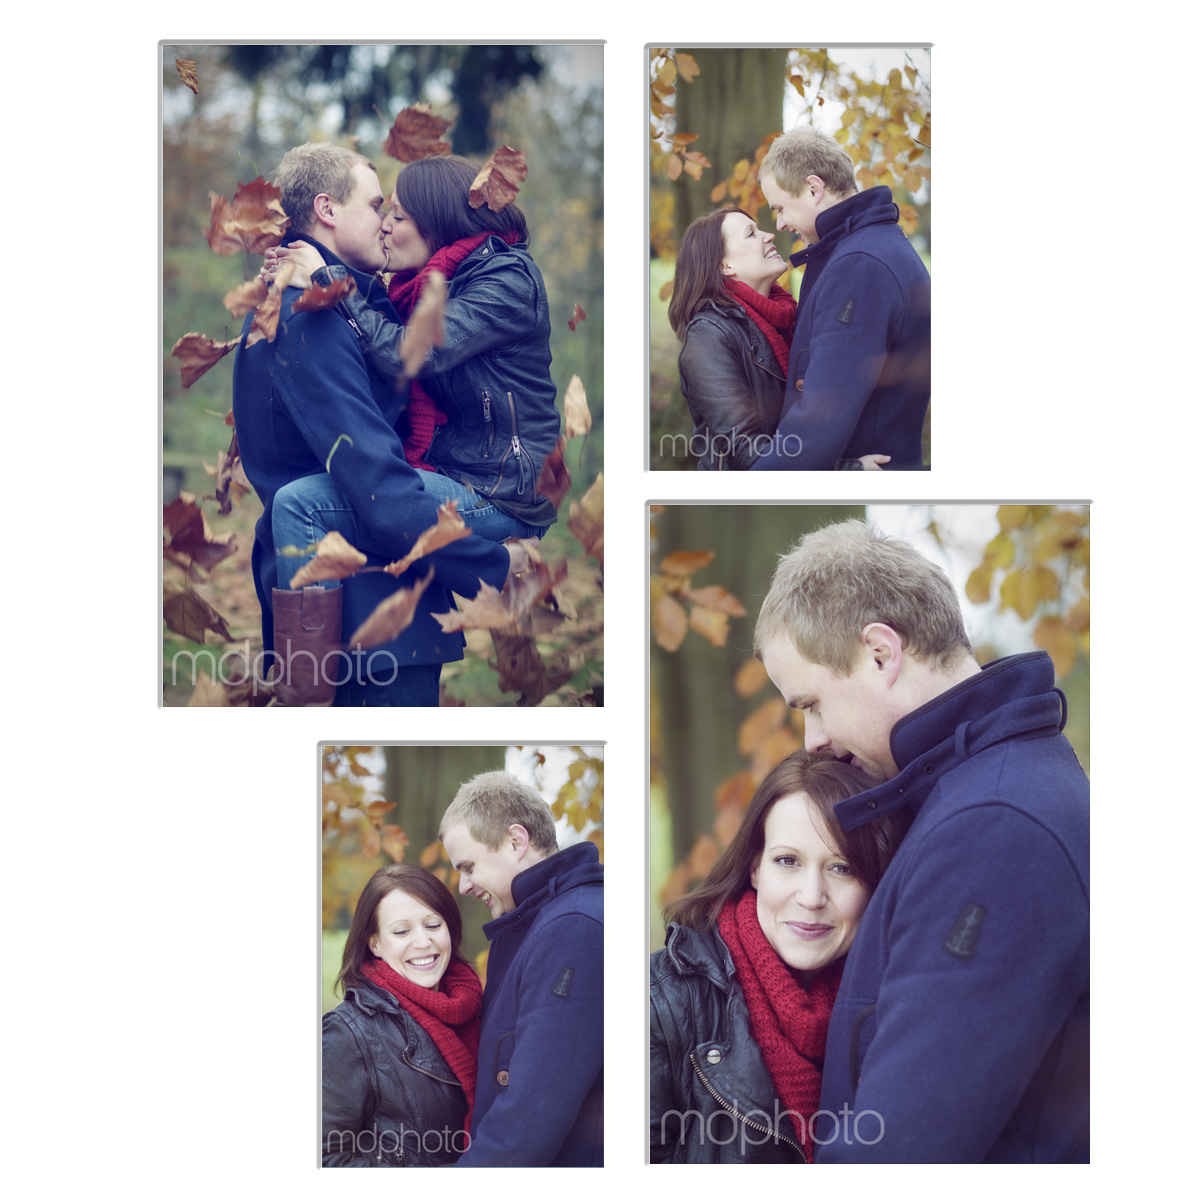 Stowe_Park_Engagement_Photo_Shoot_Ingleby_Barwick_Yarm_Wedding_mdphoto_4